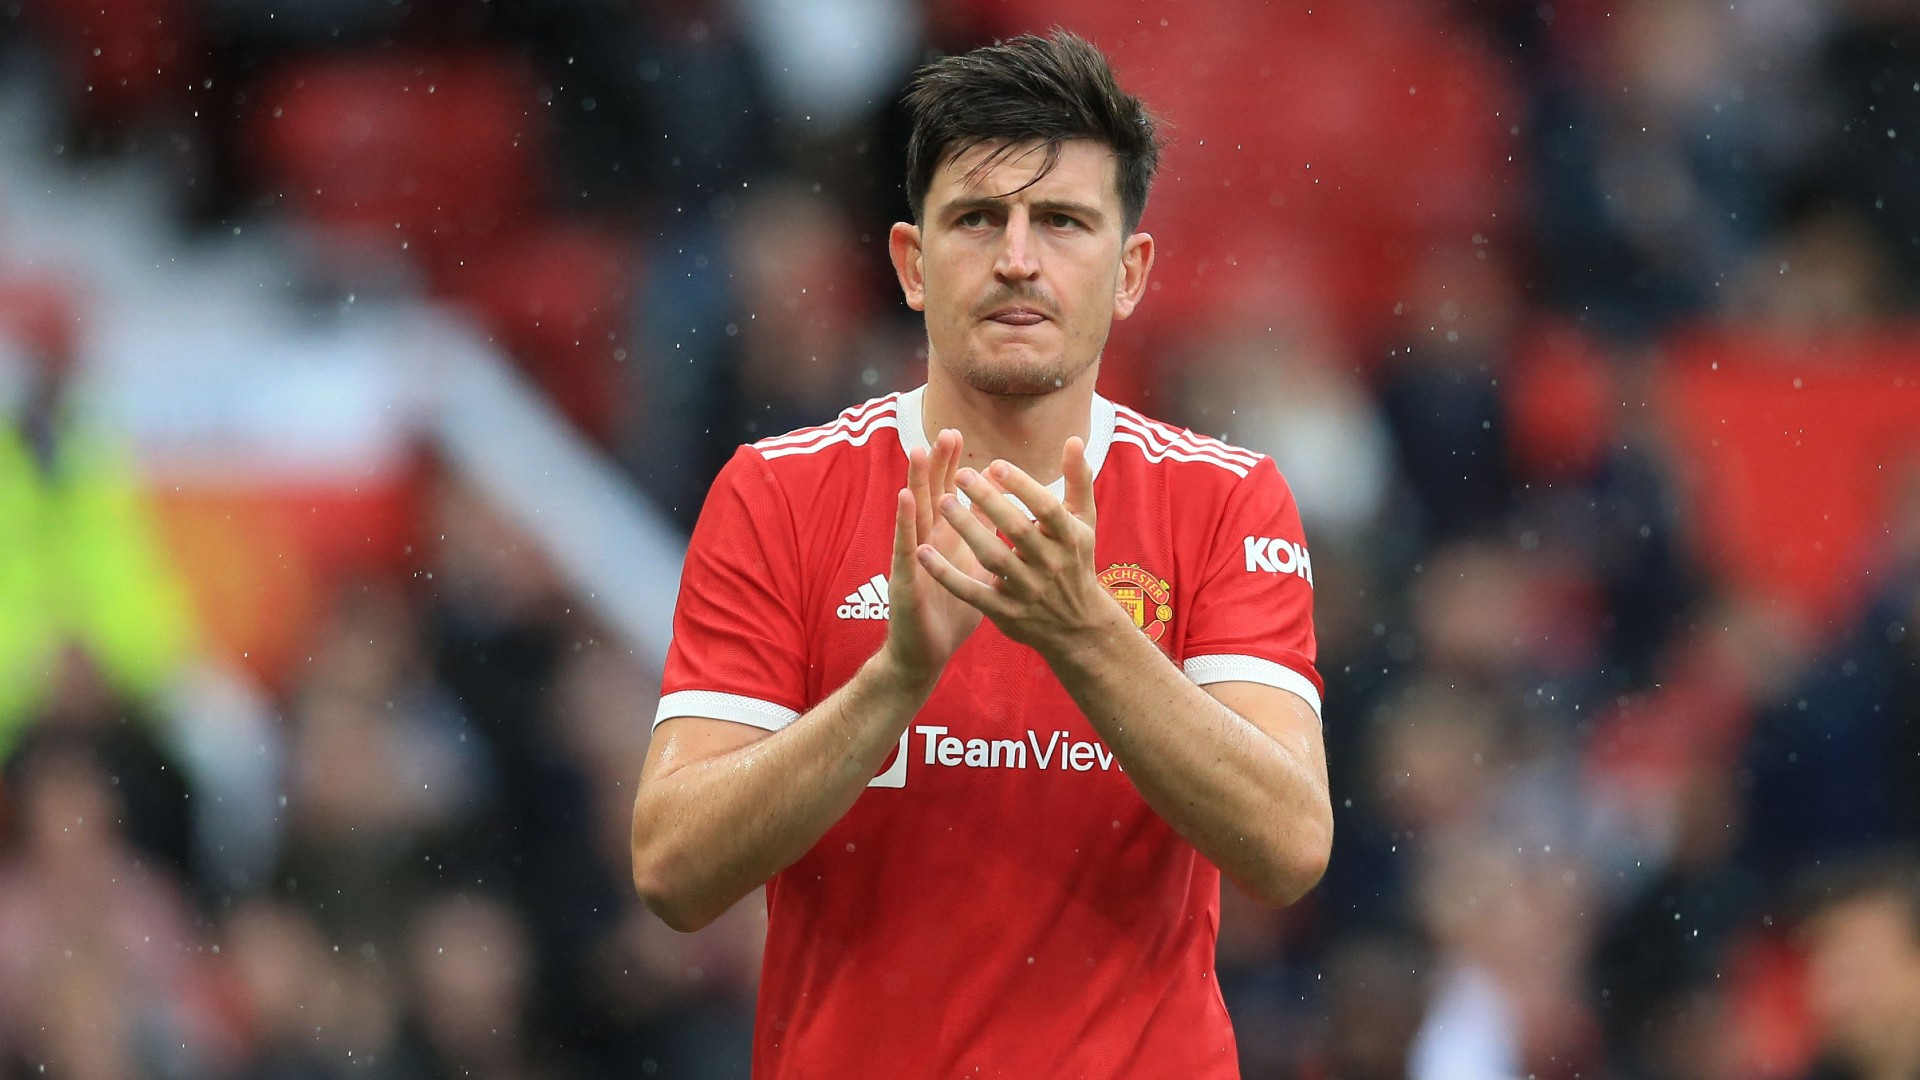 Maguire backs Sancho to be a 'real star' for Man Utd after protracted £73m transfer